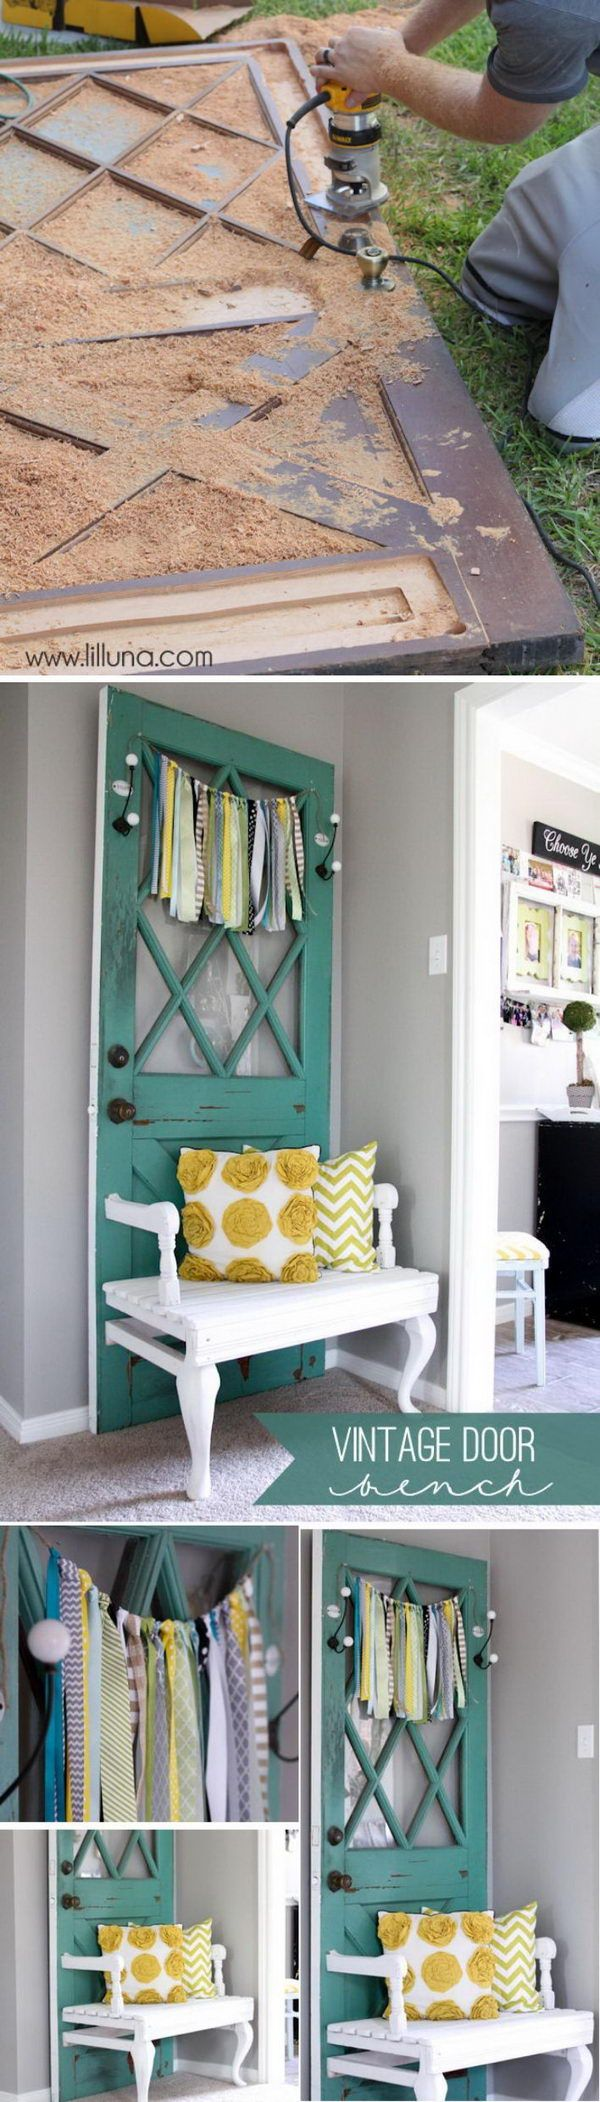 30 Fabulous Furniture Makeover DIY Projects Design